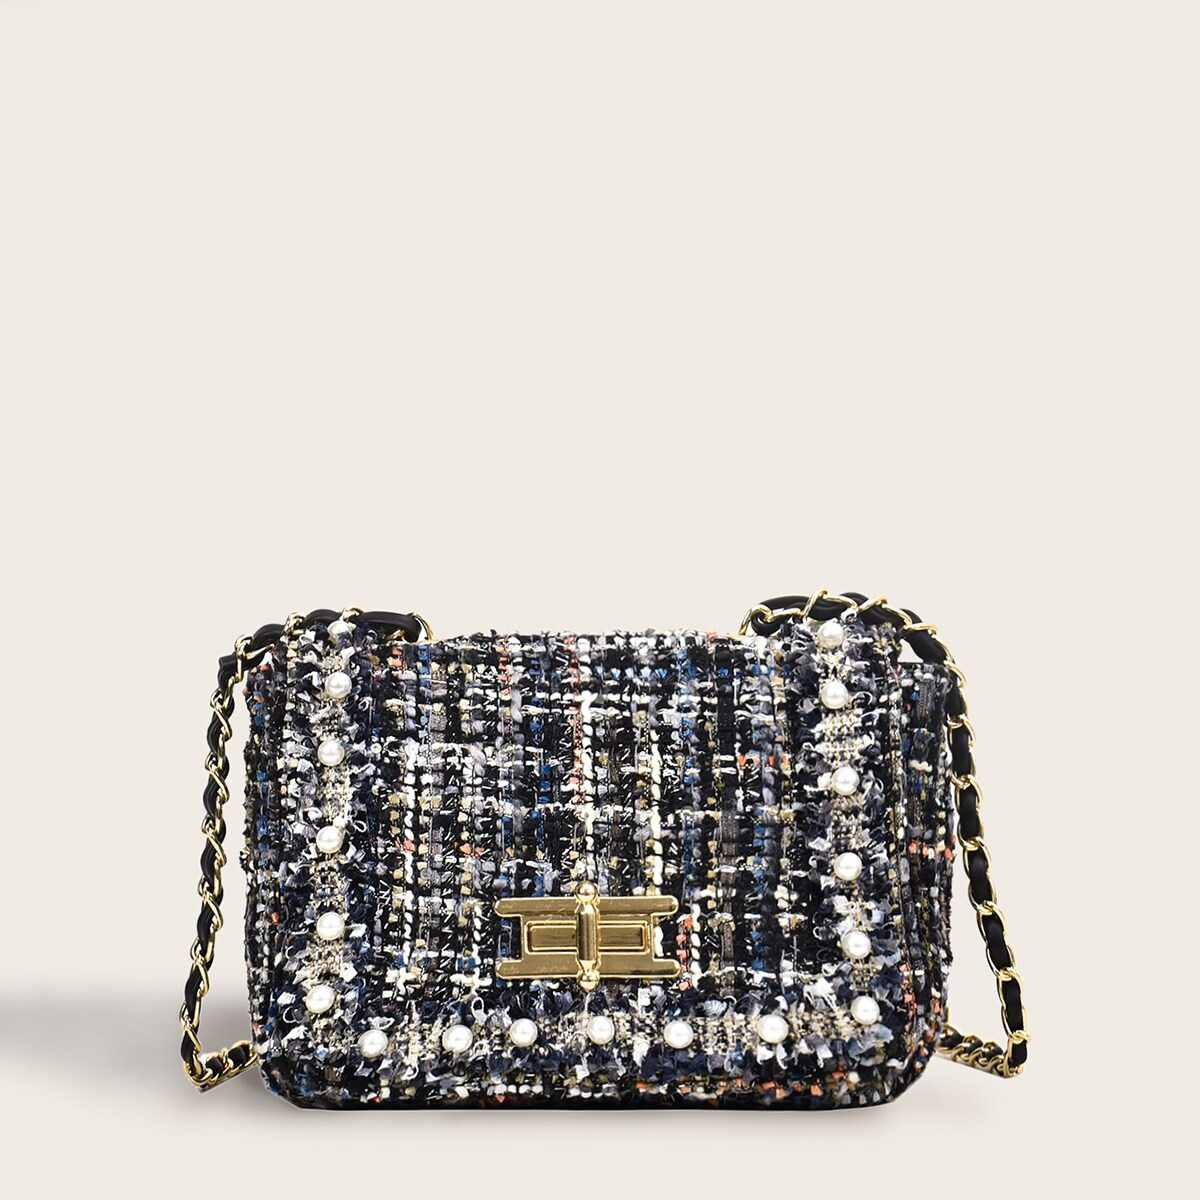 Faux Pearl Decor Tweed Chain Bag in Multicolor by ROMWE on GOOFASH